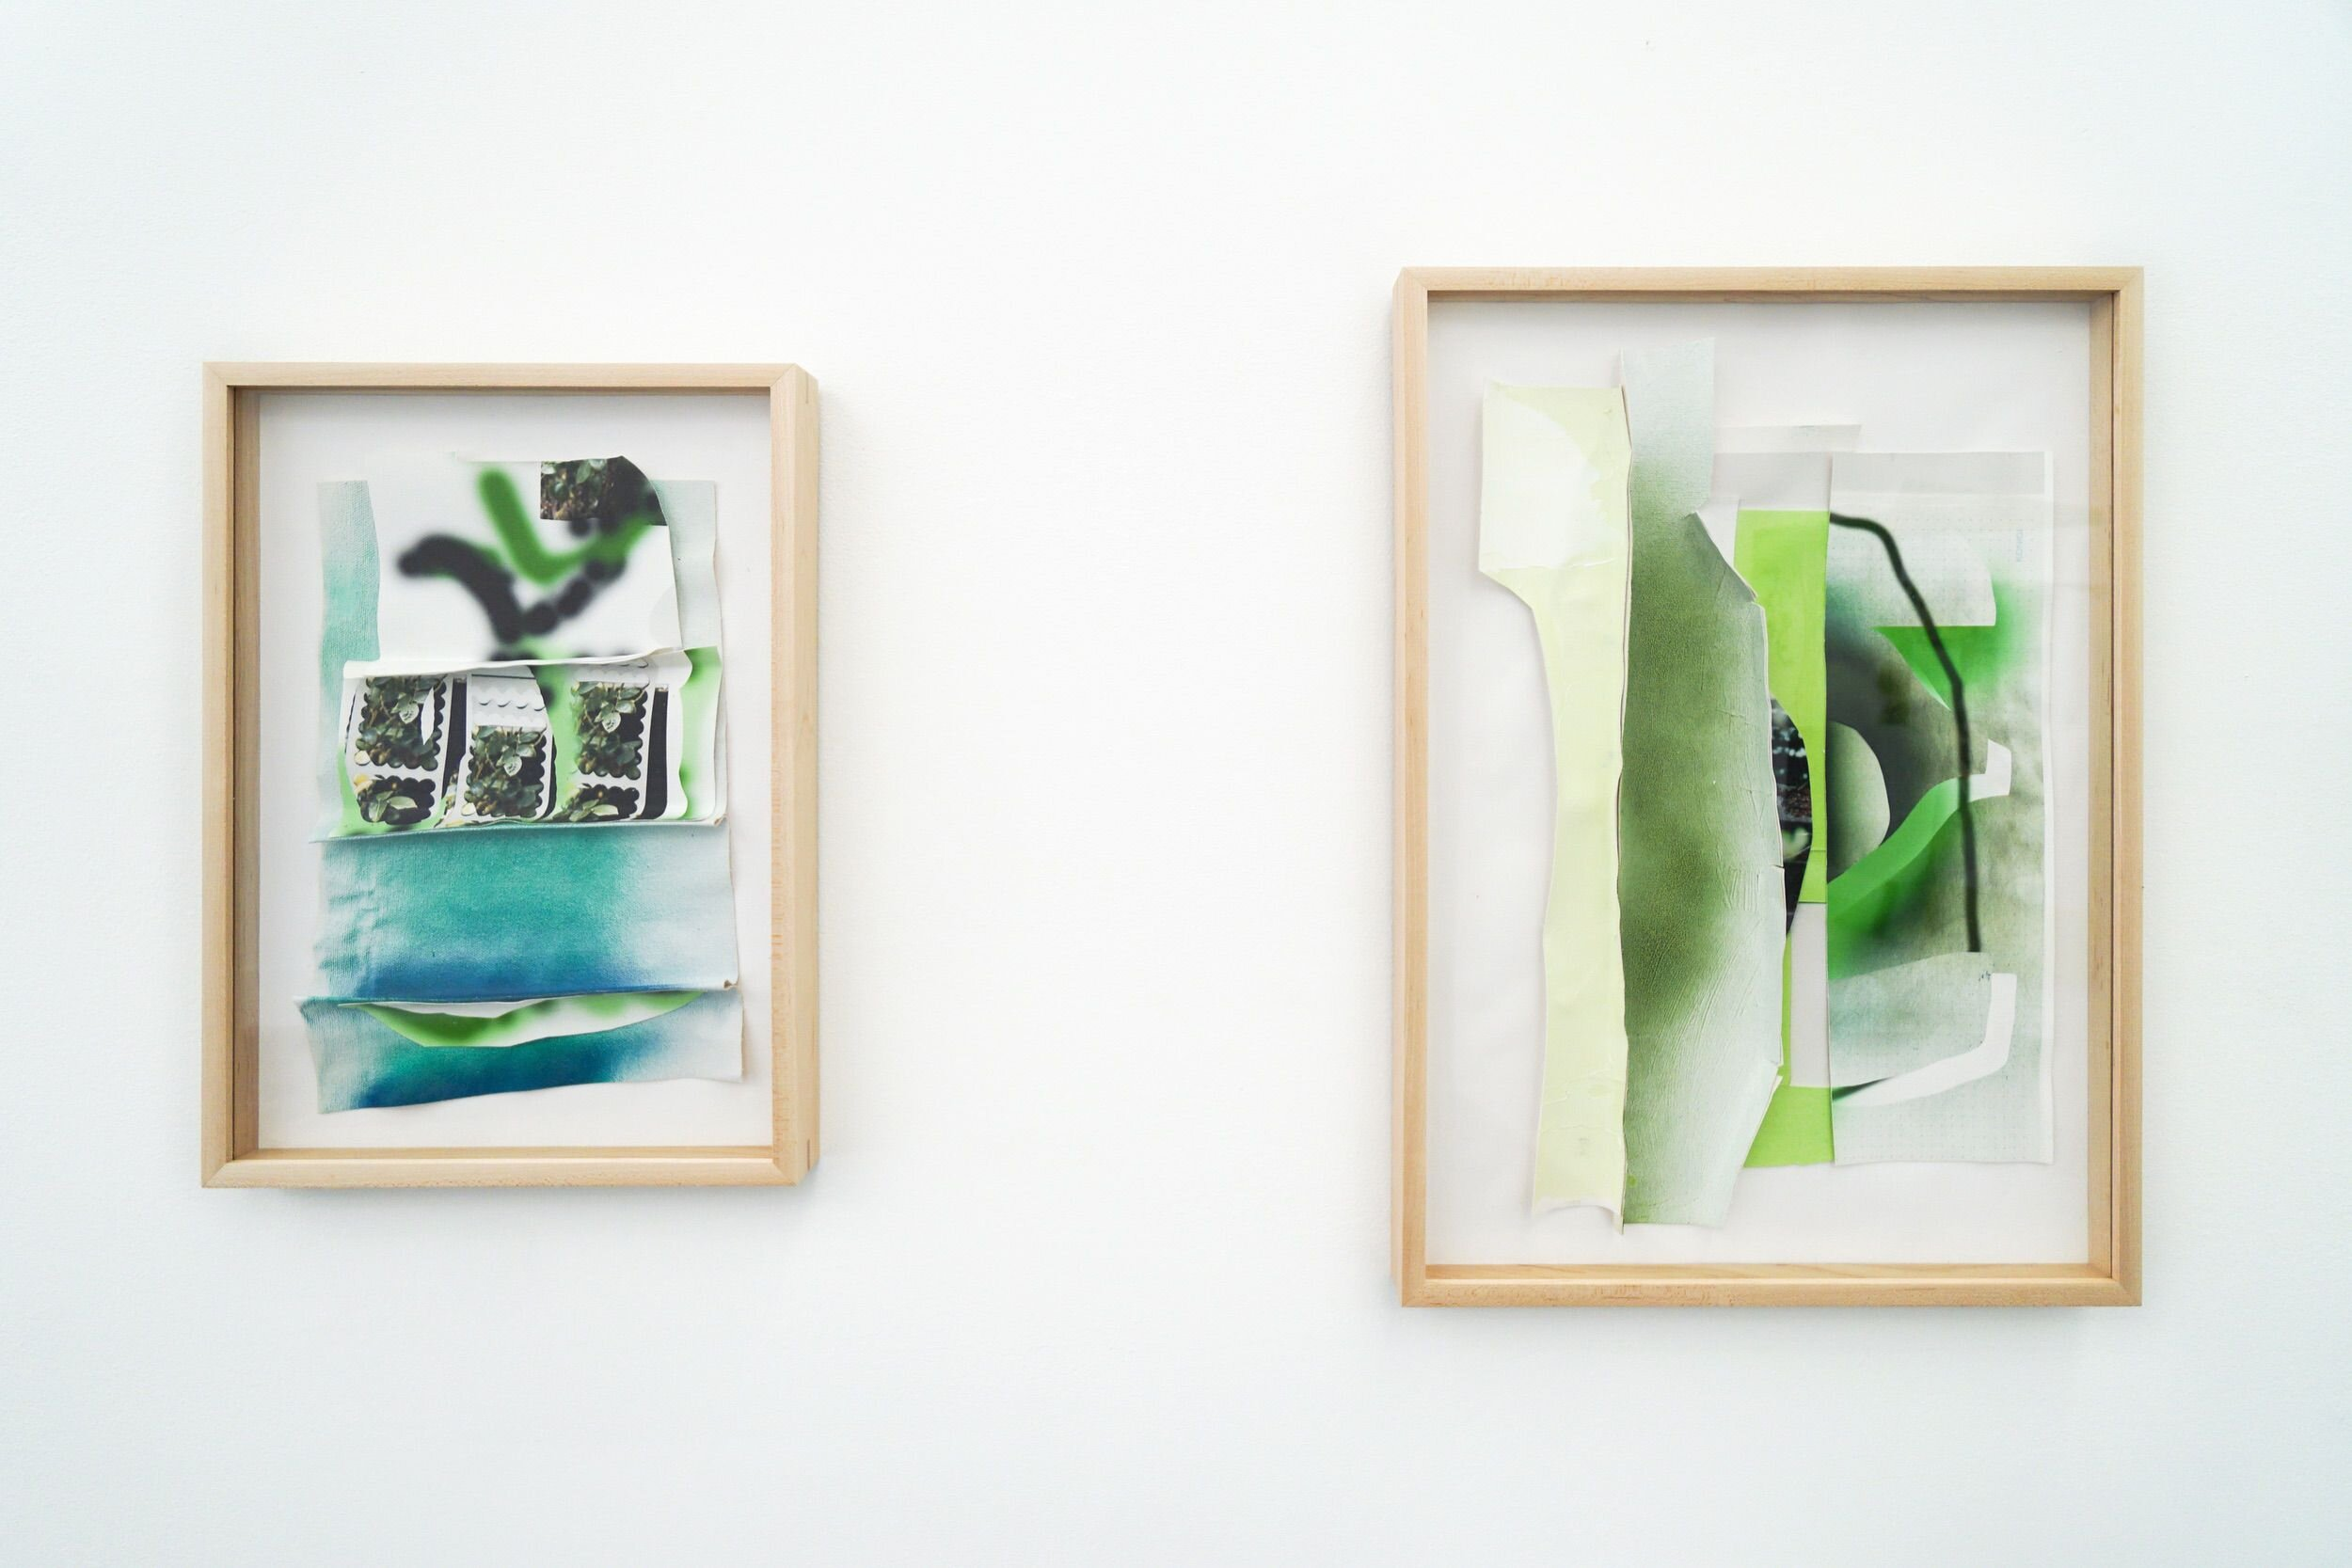 Two paintings by Kate Bonner hanging in light wood frames. Each is made up of a collage of digital and analog painting on layered pieces of paper with torn edges.